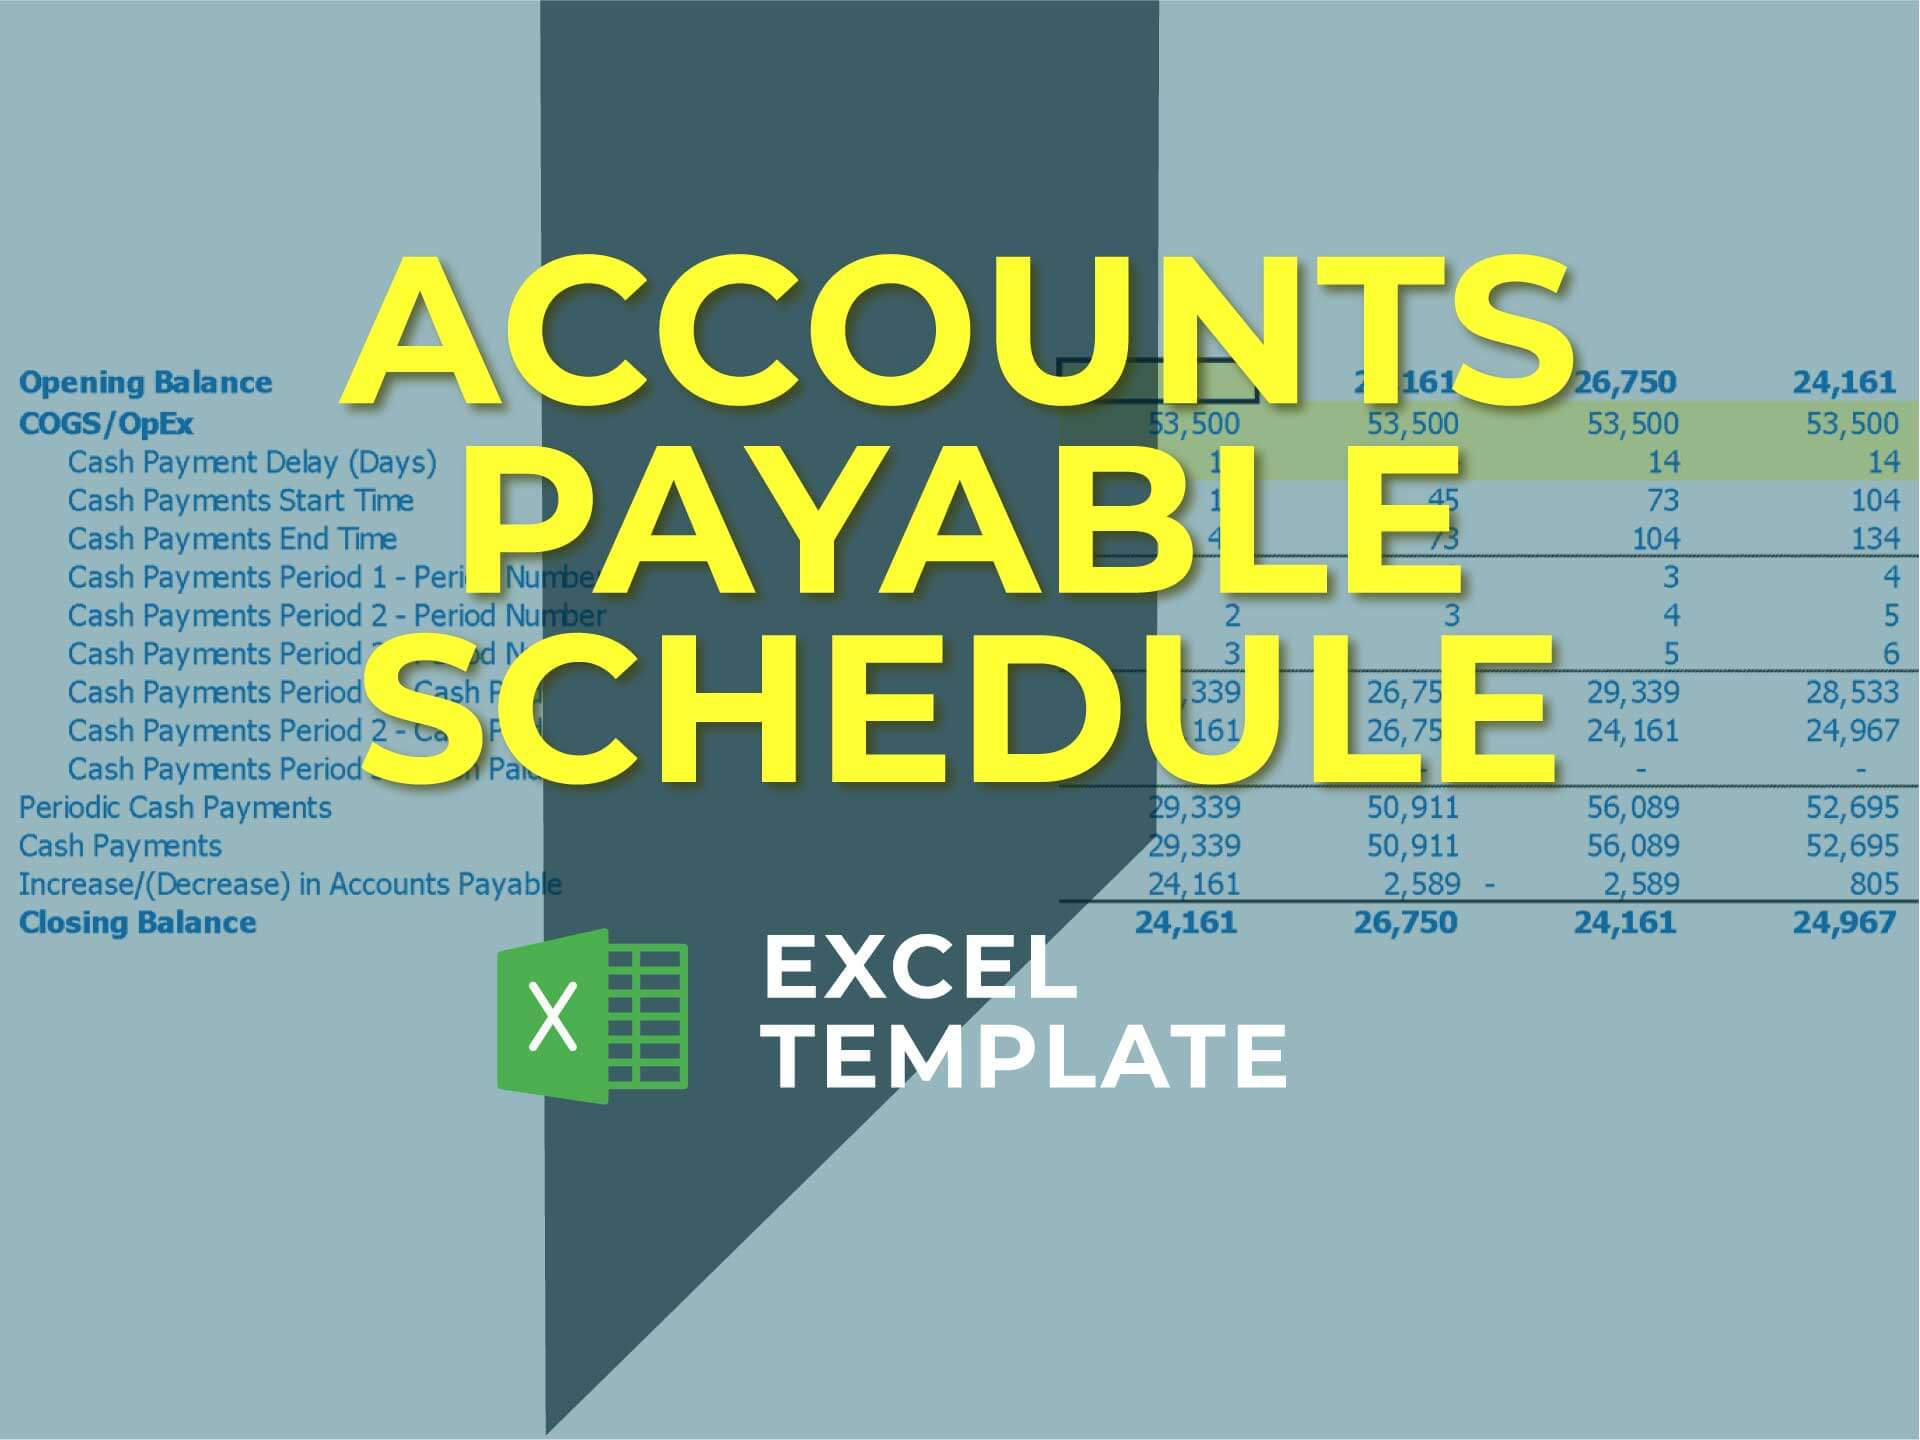 Accounts Payable Calculator - Templarket -  Business Templates Marketplace